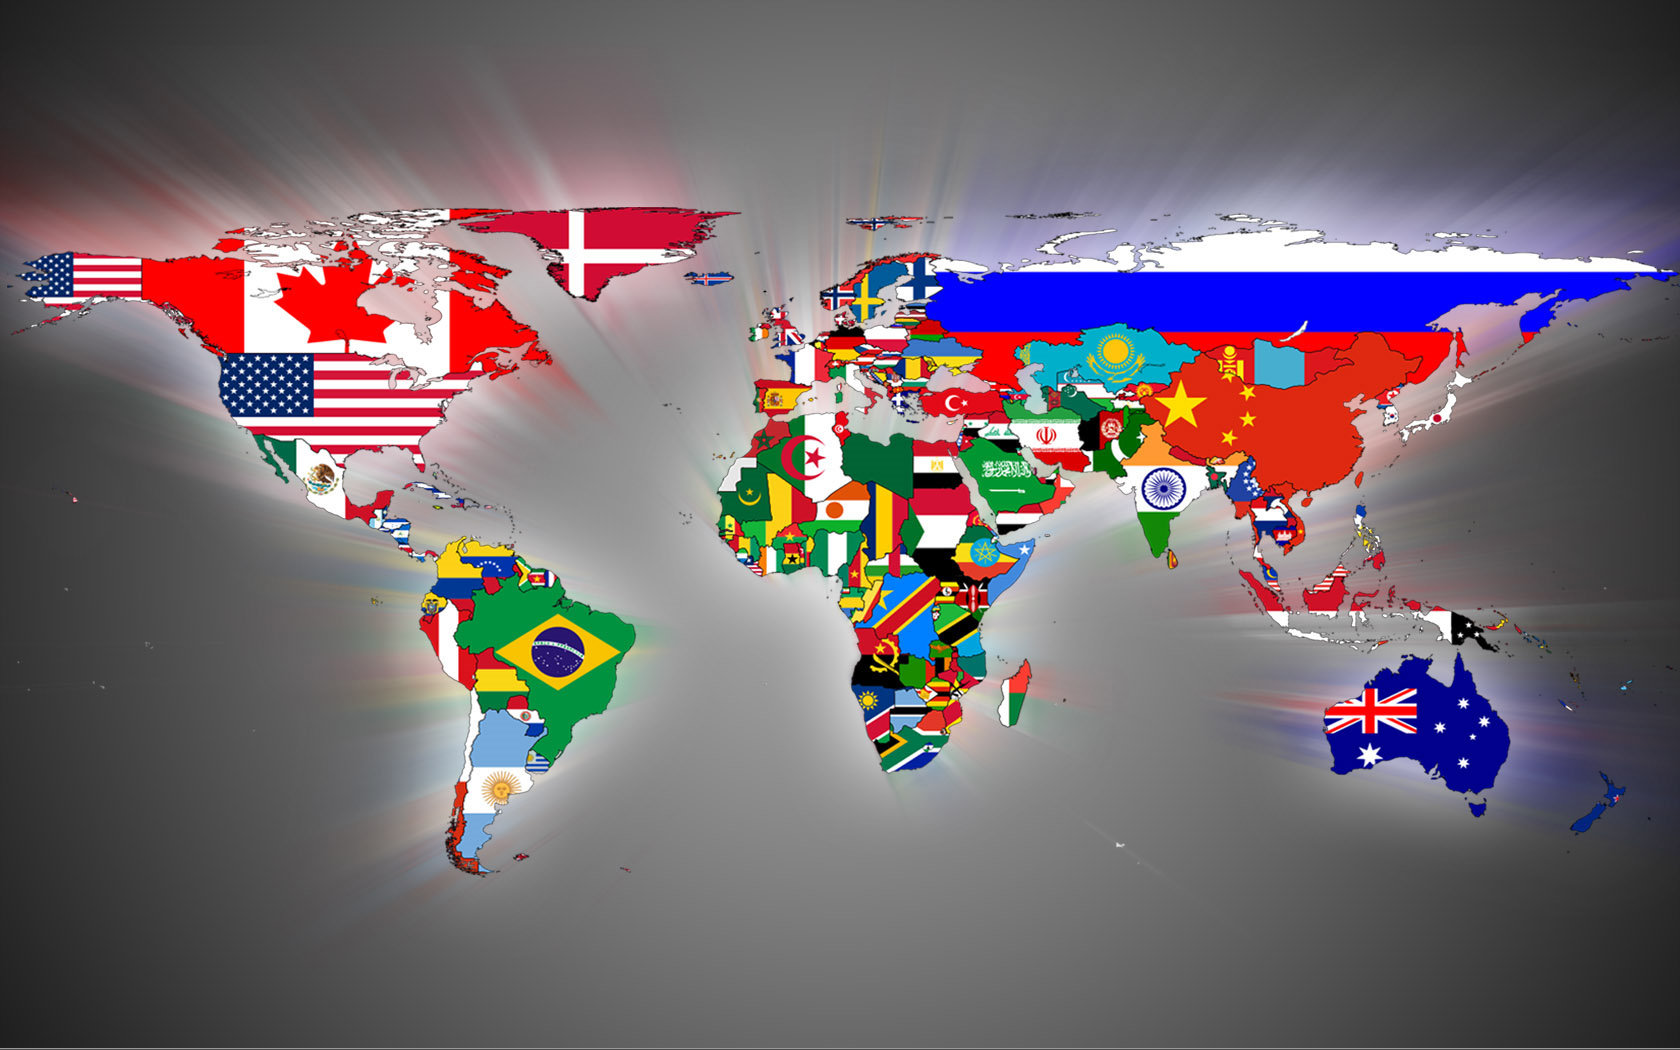 World Map Wall Paper world map wallpaper 6248 1680x1050 px ~ hdwallsource